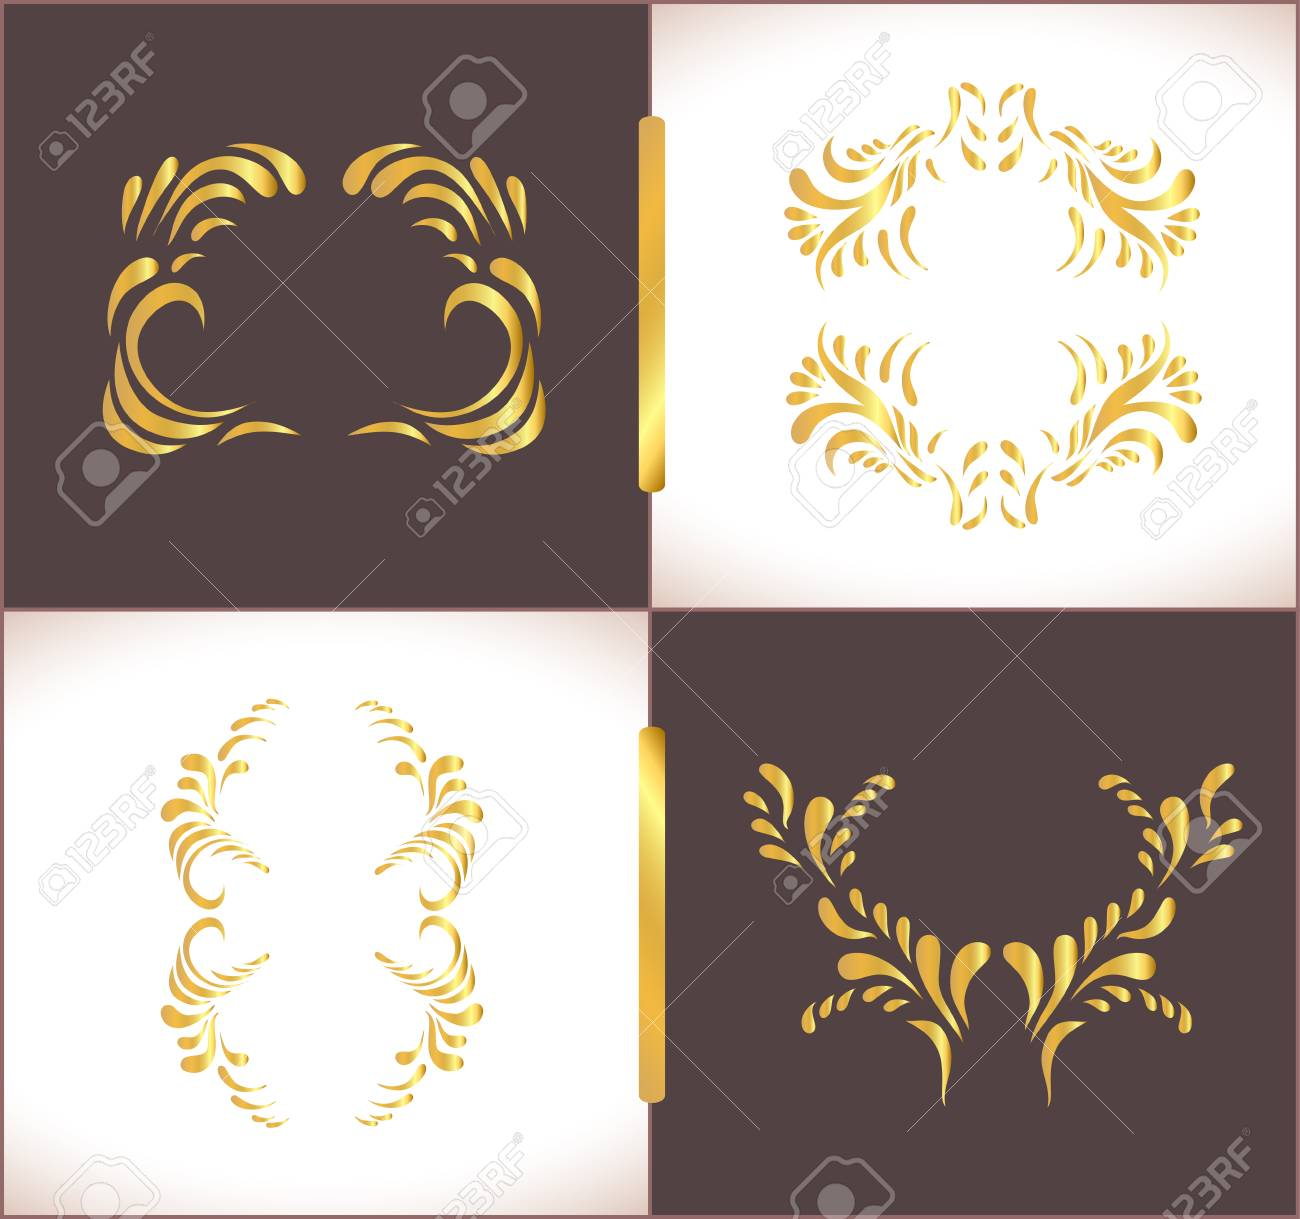 Gold artistic pages set decorative luxury greeting card or gold artistic pages set decorative luxury greeting card or invitation template celebration background with stopboris Images